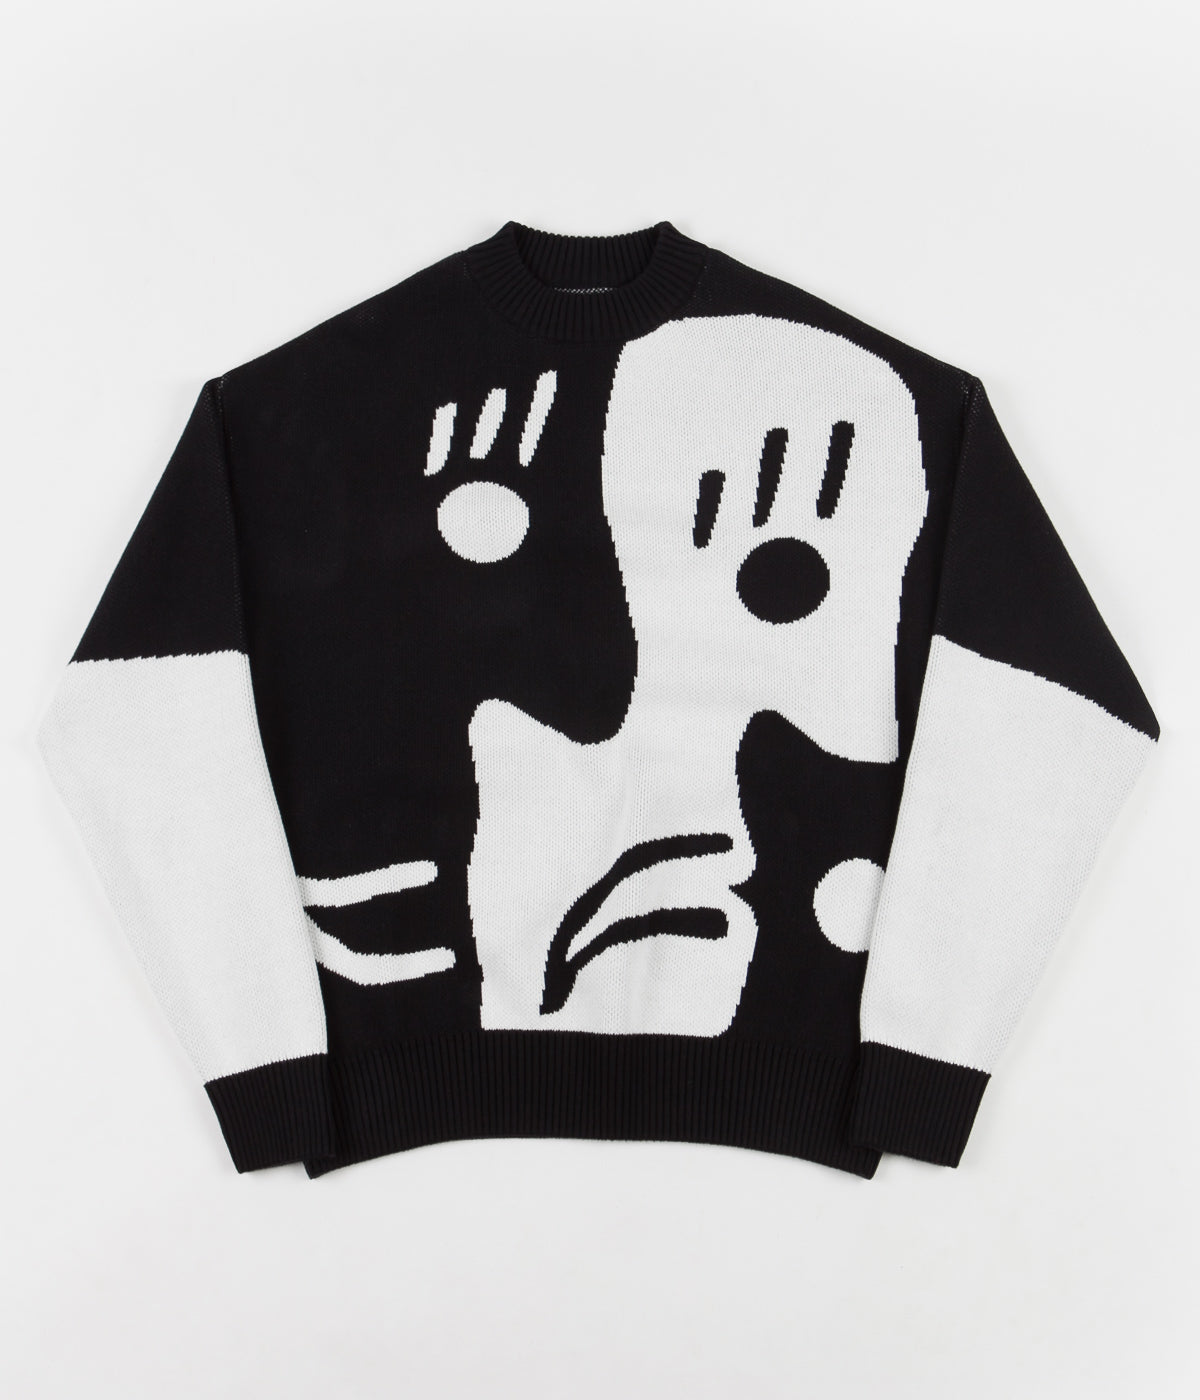 Polar Art Knit Sweatshirt - Alv / Black